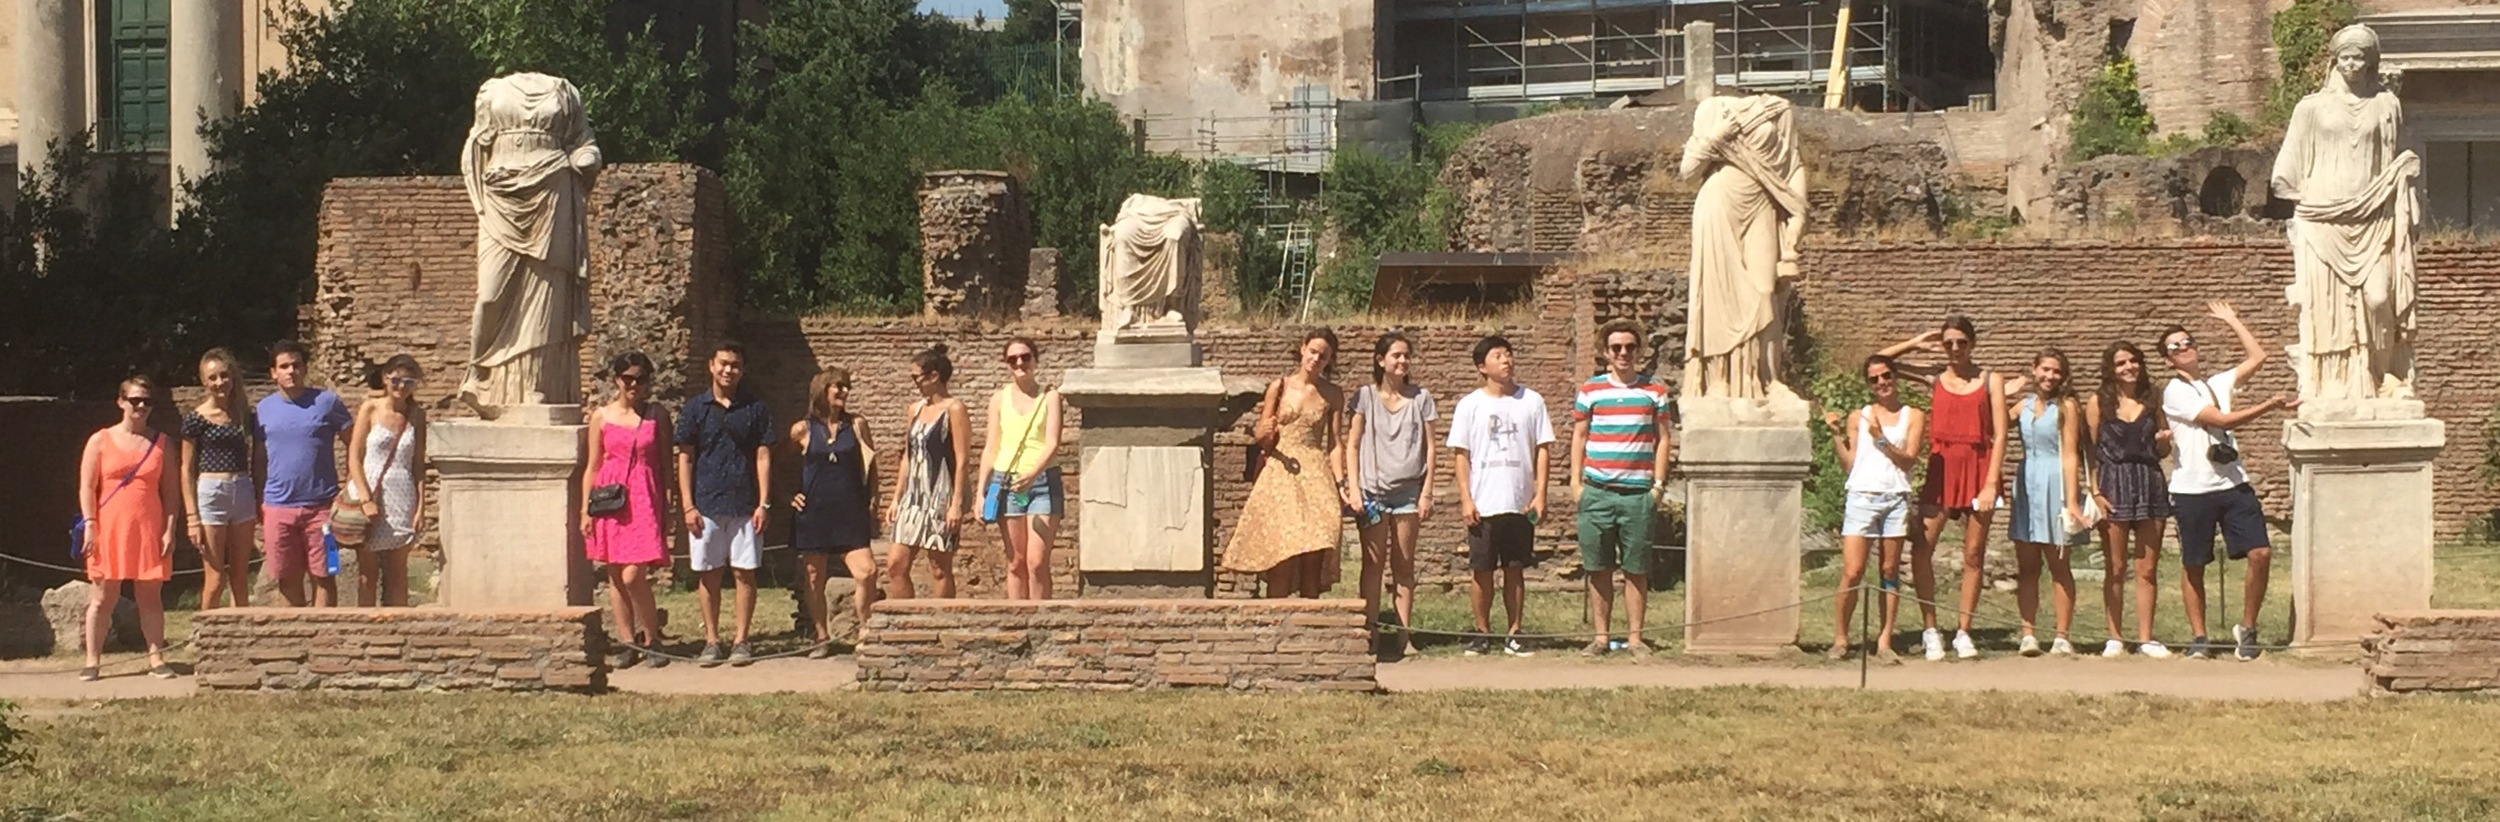 Both trips posing with the Vestal Virgins